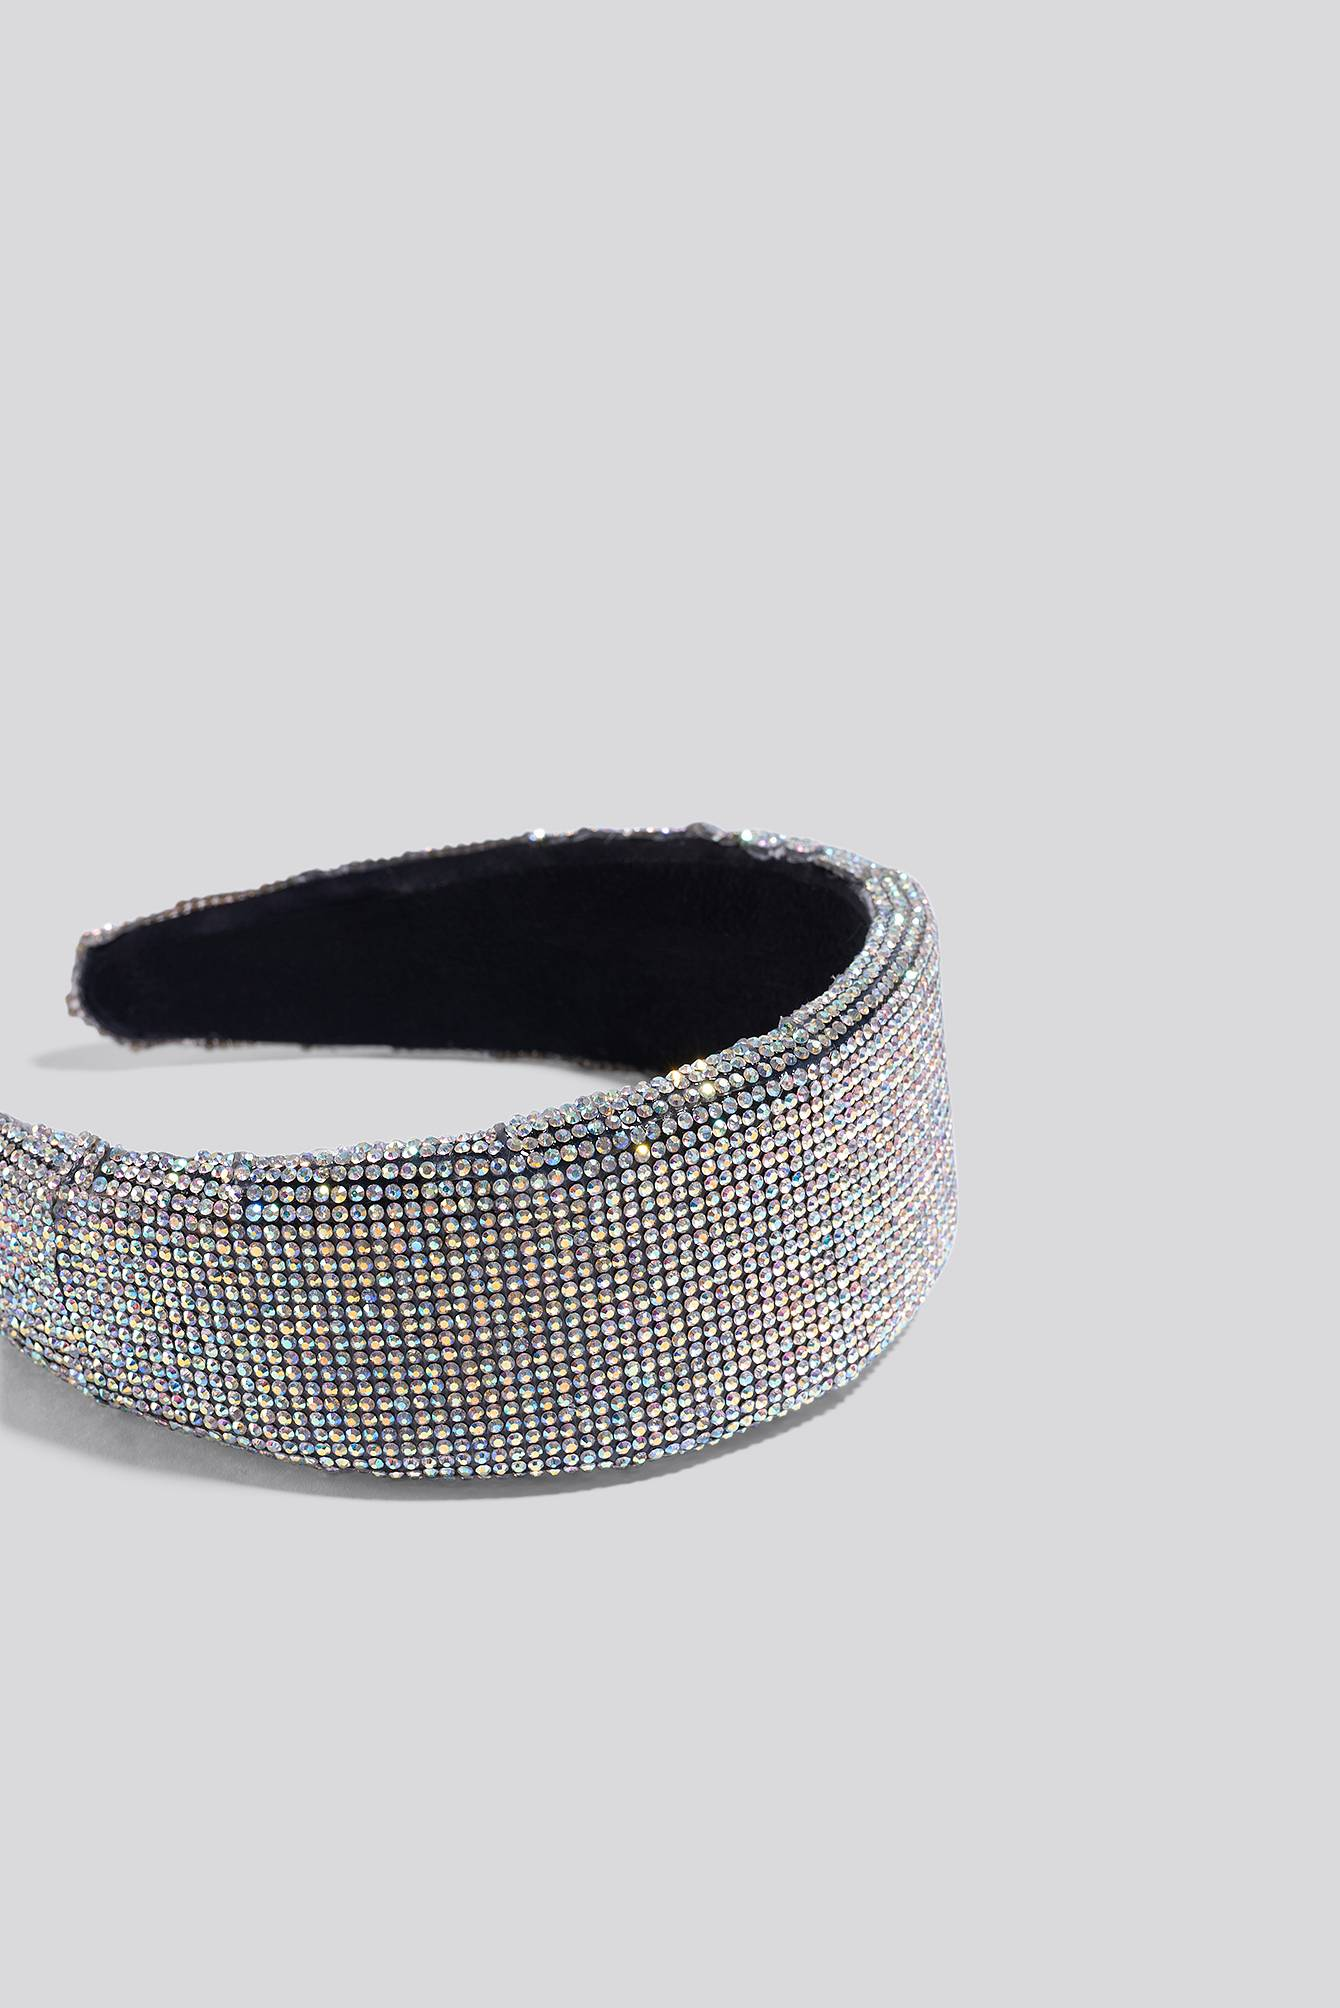 Image of NA-KD Accessories All Over Rhinestone Head Band - Silver